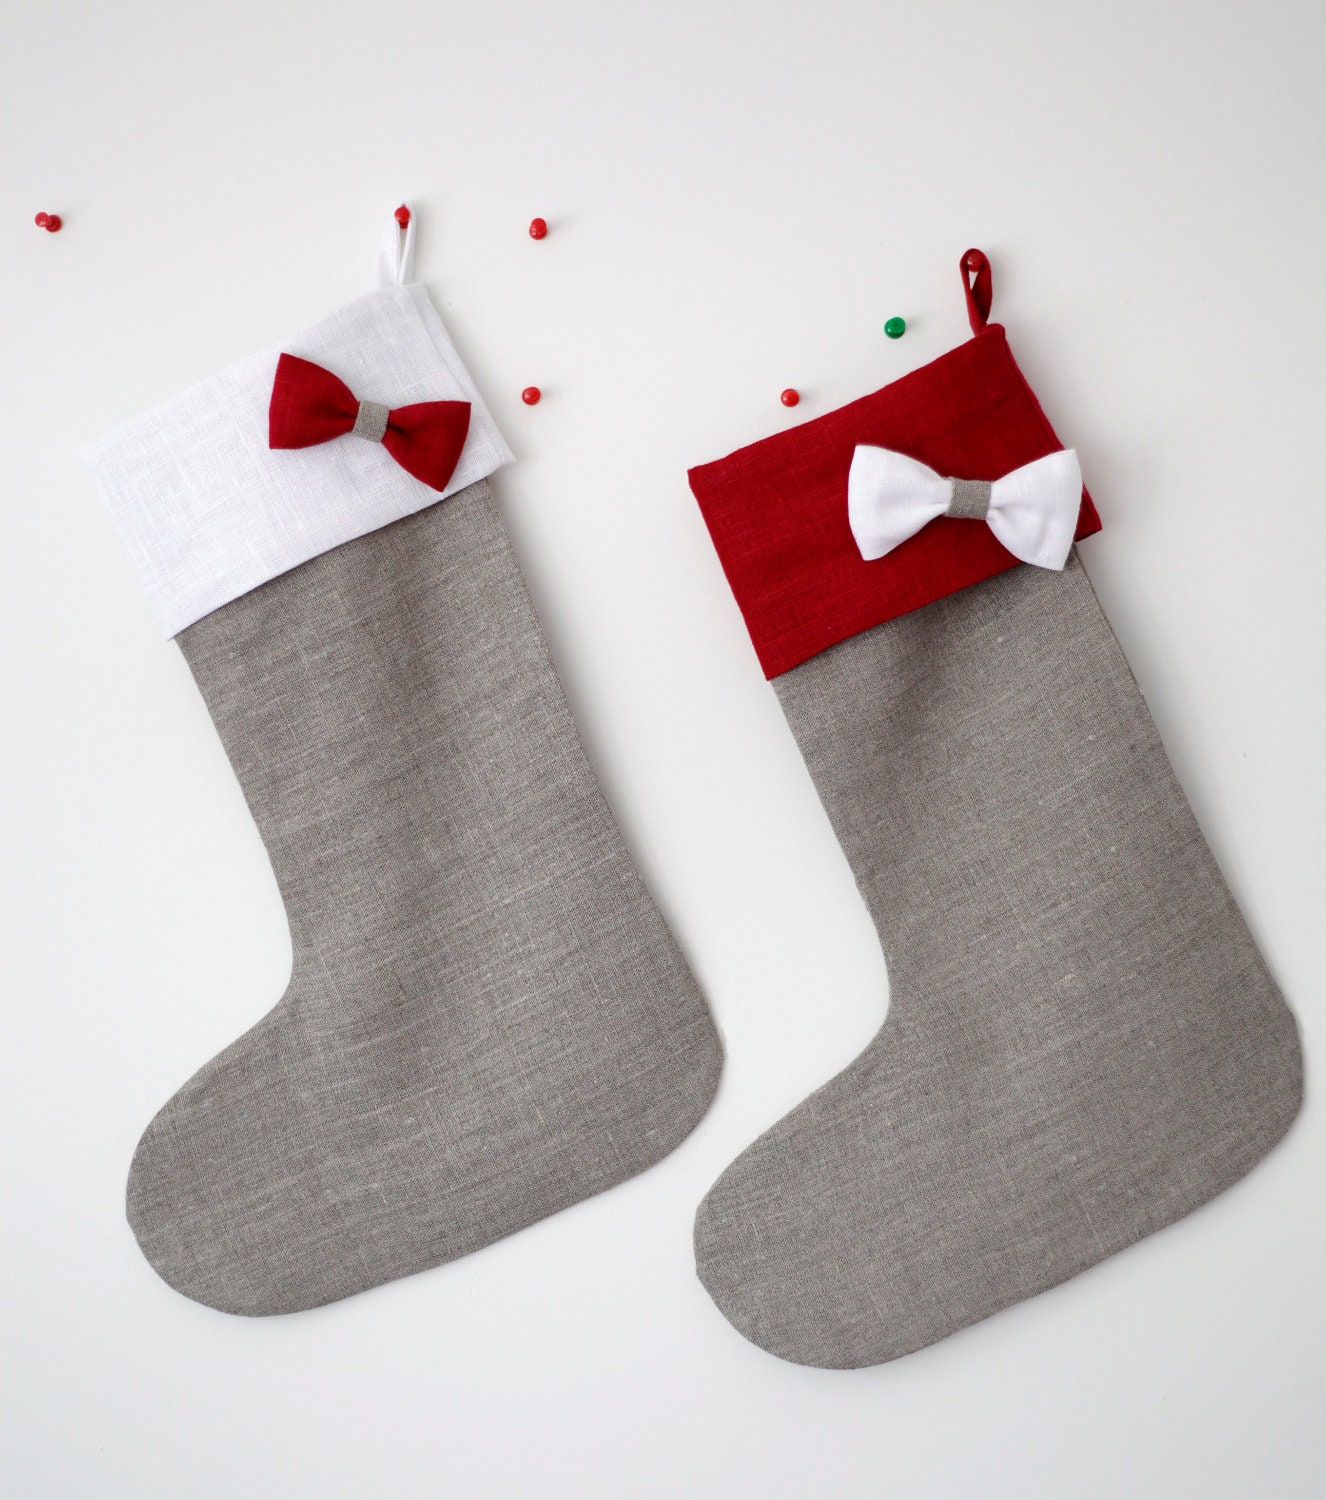 Christmas stocking - 2 linen stocking - gift idea for kids - grey with red and white top - pillowlink